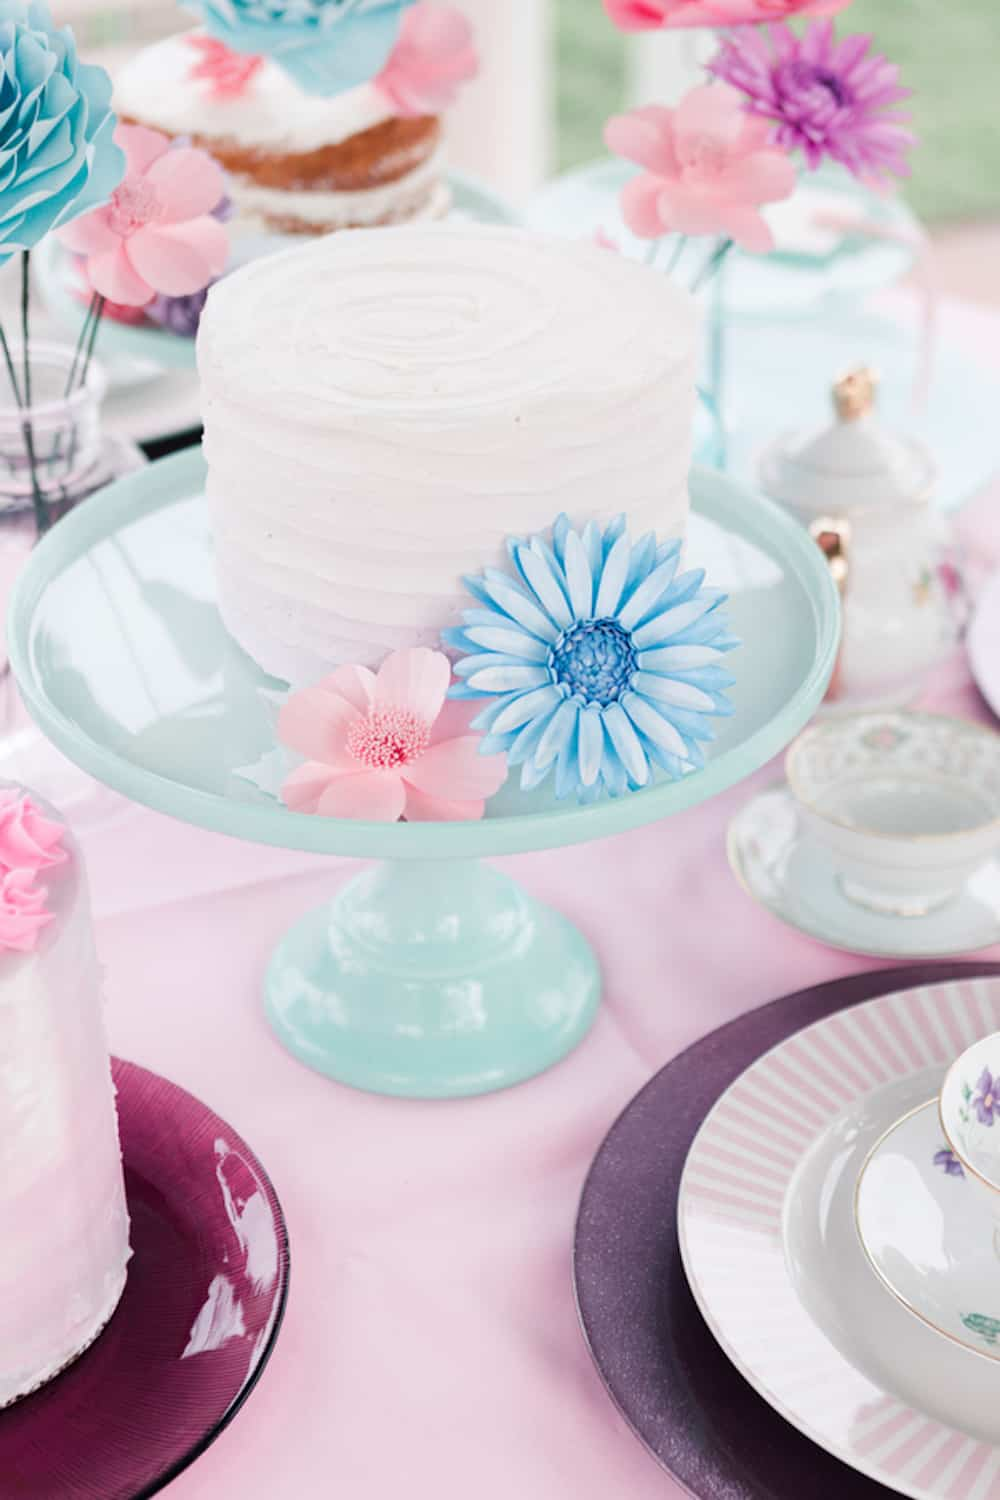 4A Wright_CWrightPhotography_MothersDayHighTeaStyledShootbyCWrightPhotography15_low